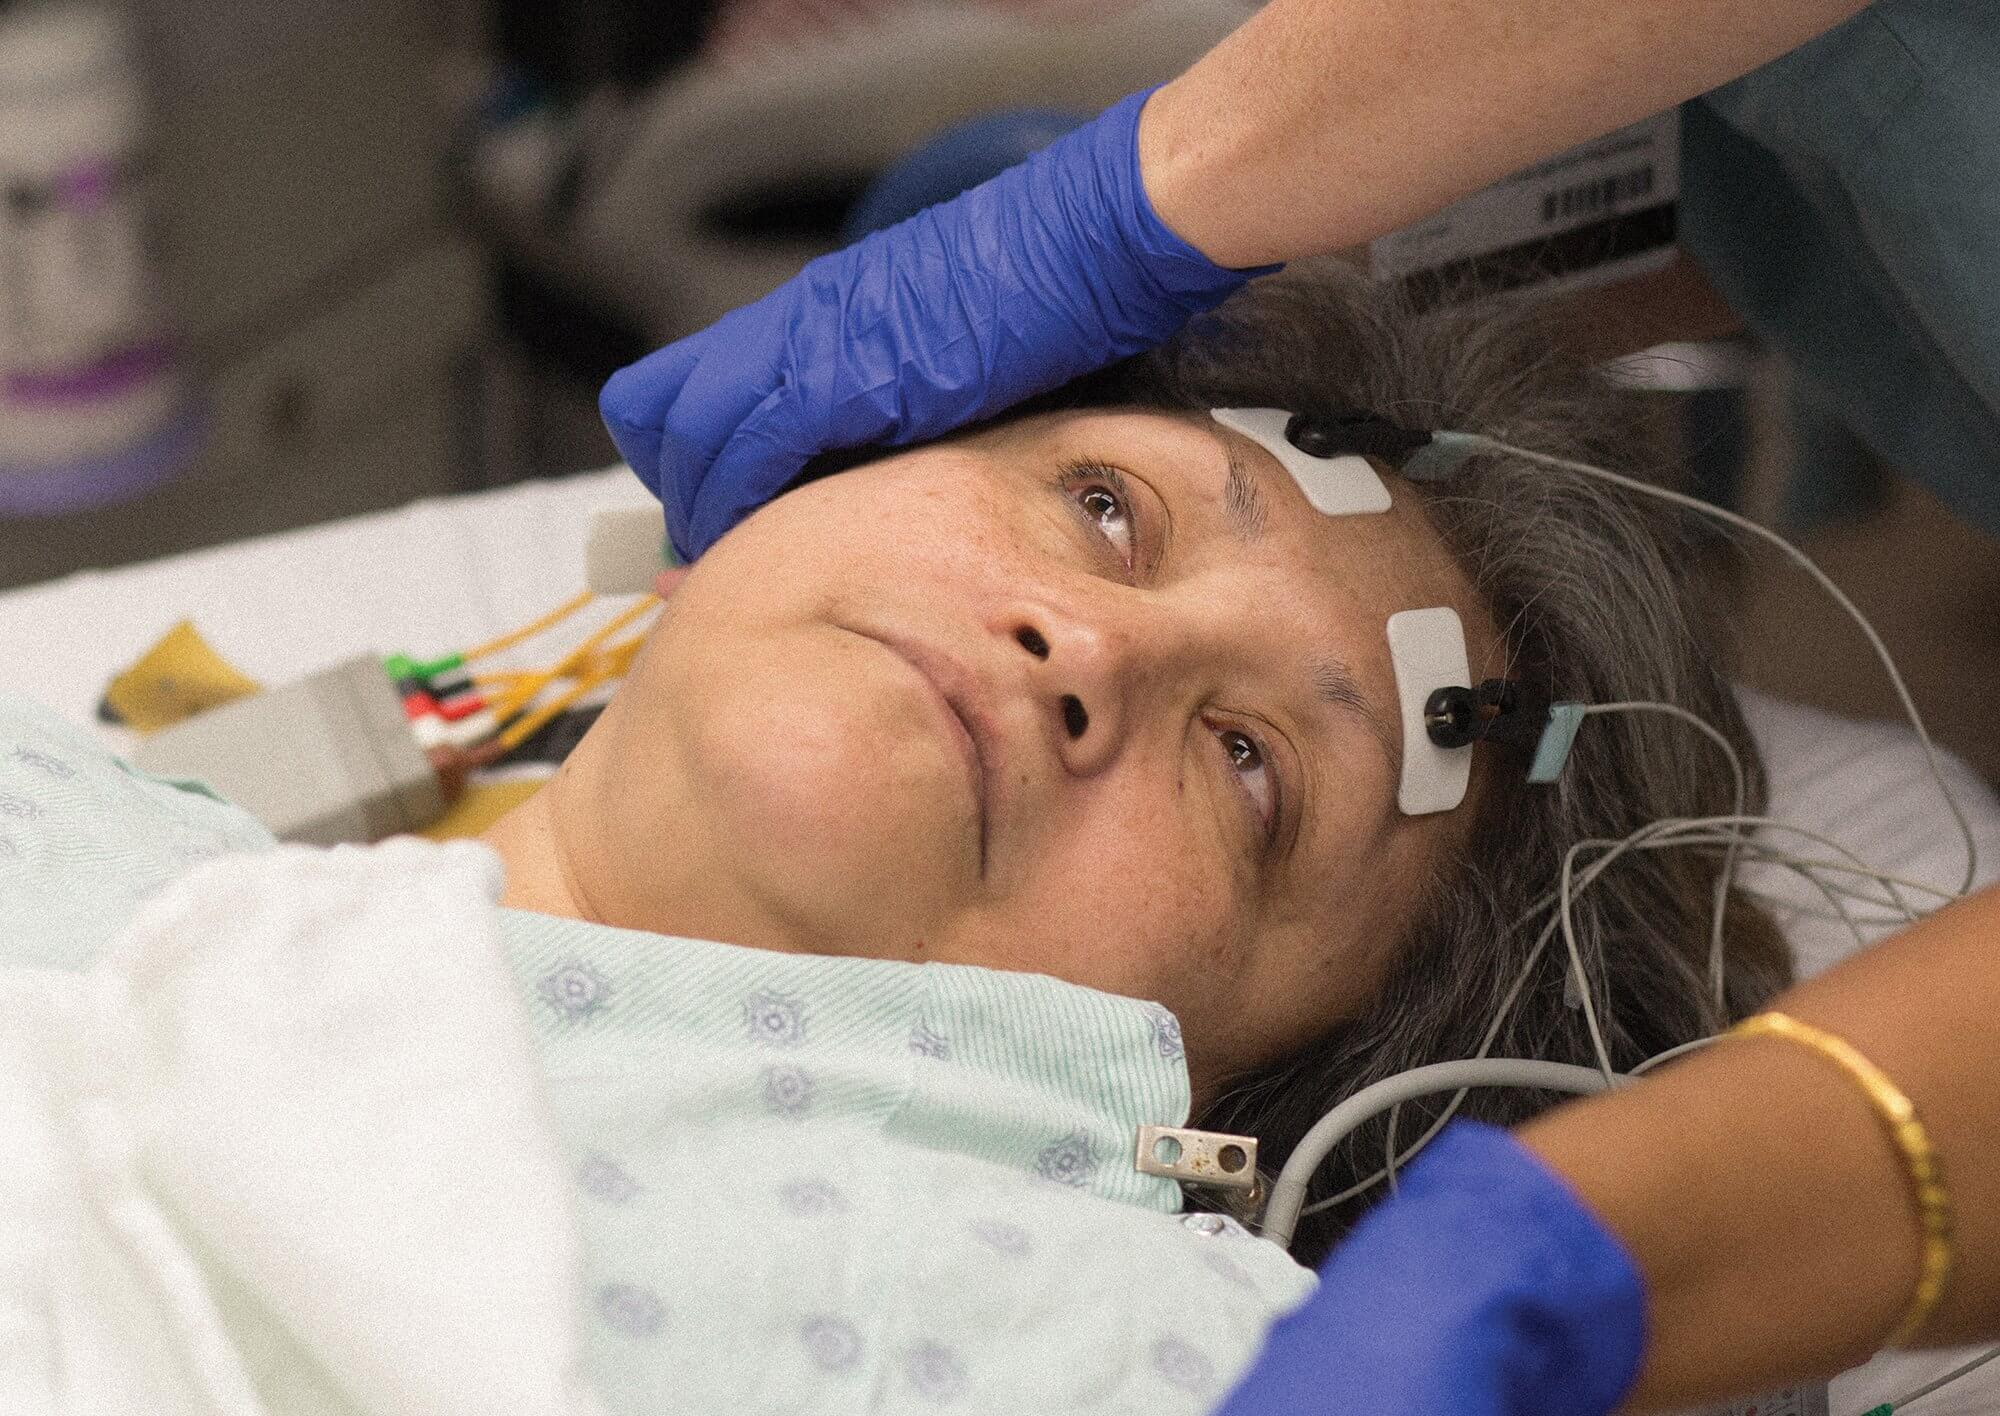 A nurse places electrodes on Natalia Rodriguez's forehead, prepping her for bilateral ECT treatment.